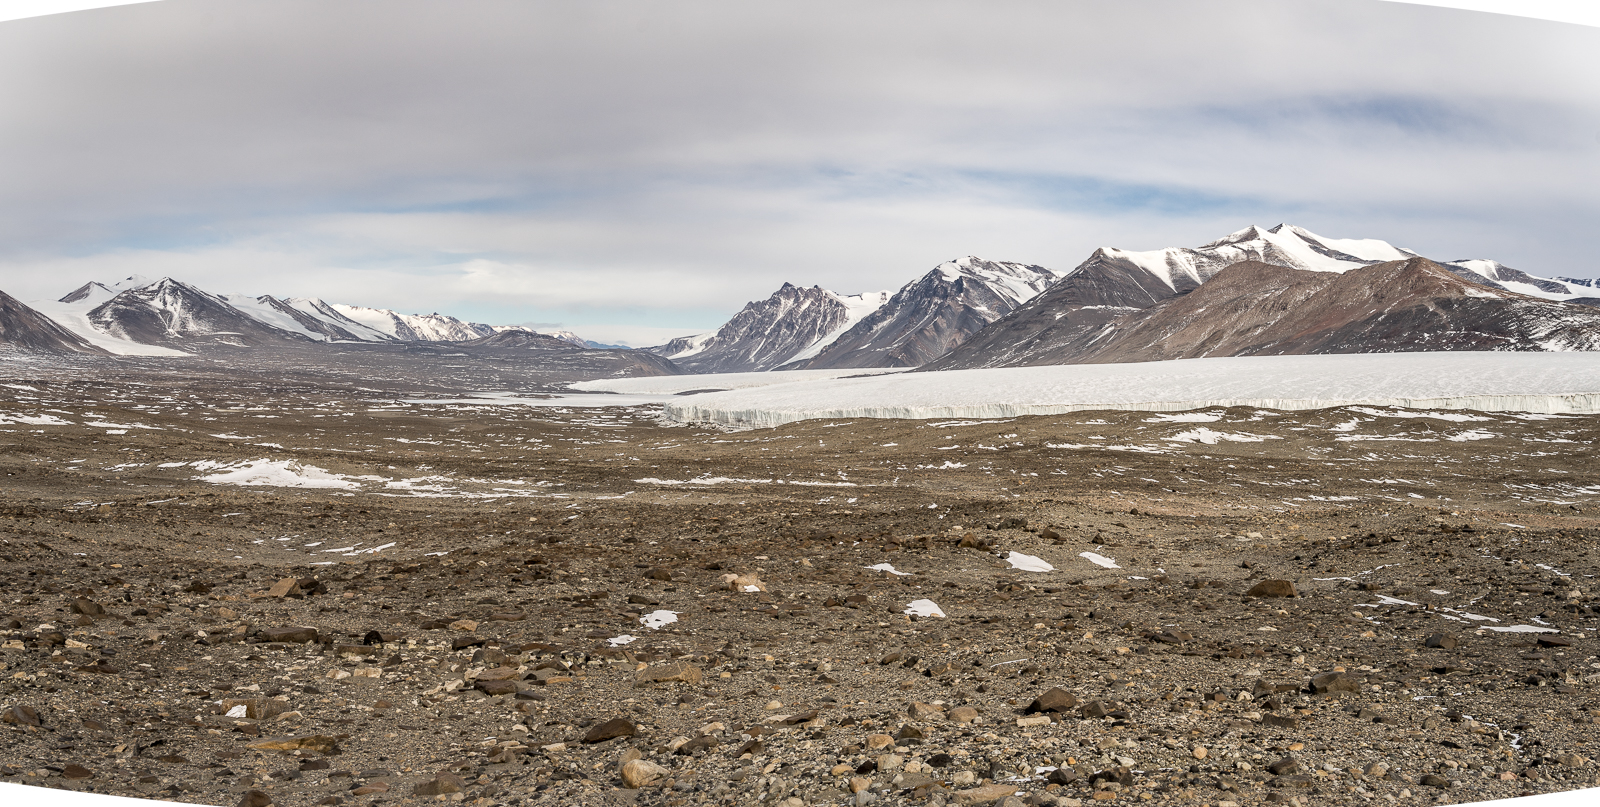 View west up the Taylor Valley. Lake Fryxell can be seen and the Commonwealth Glacier to the right.